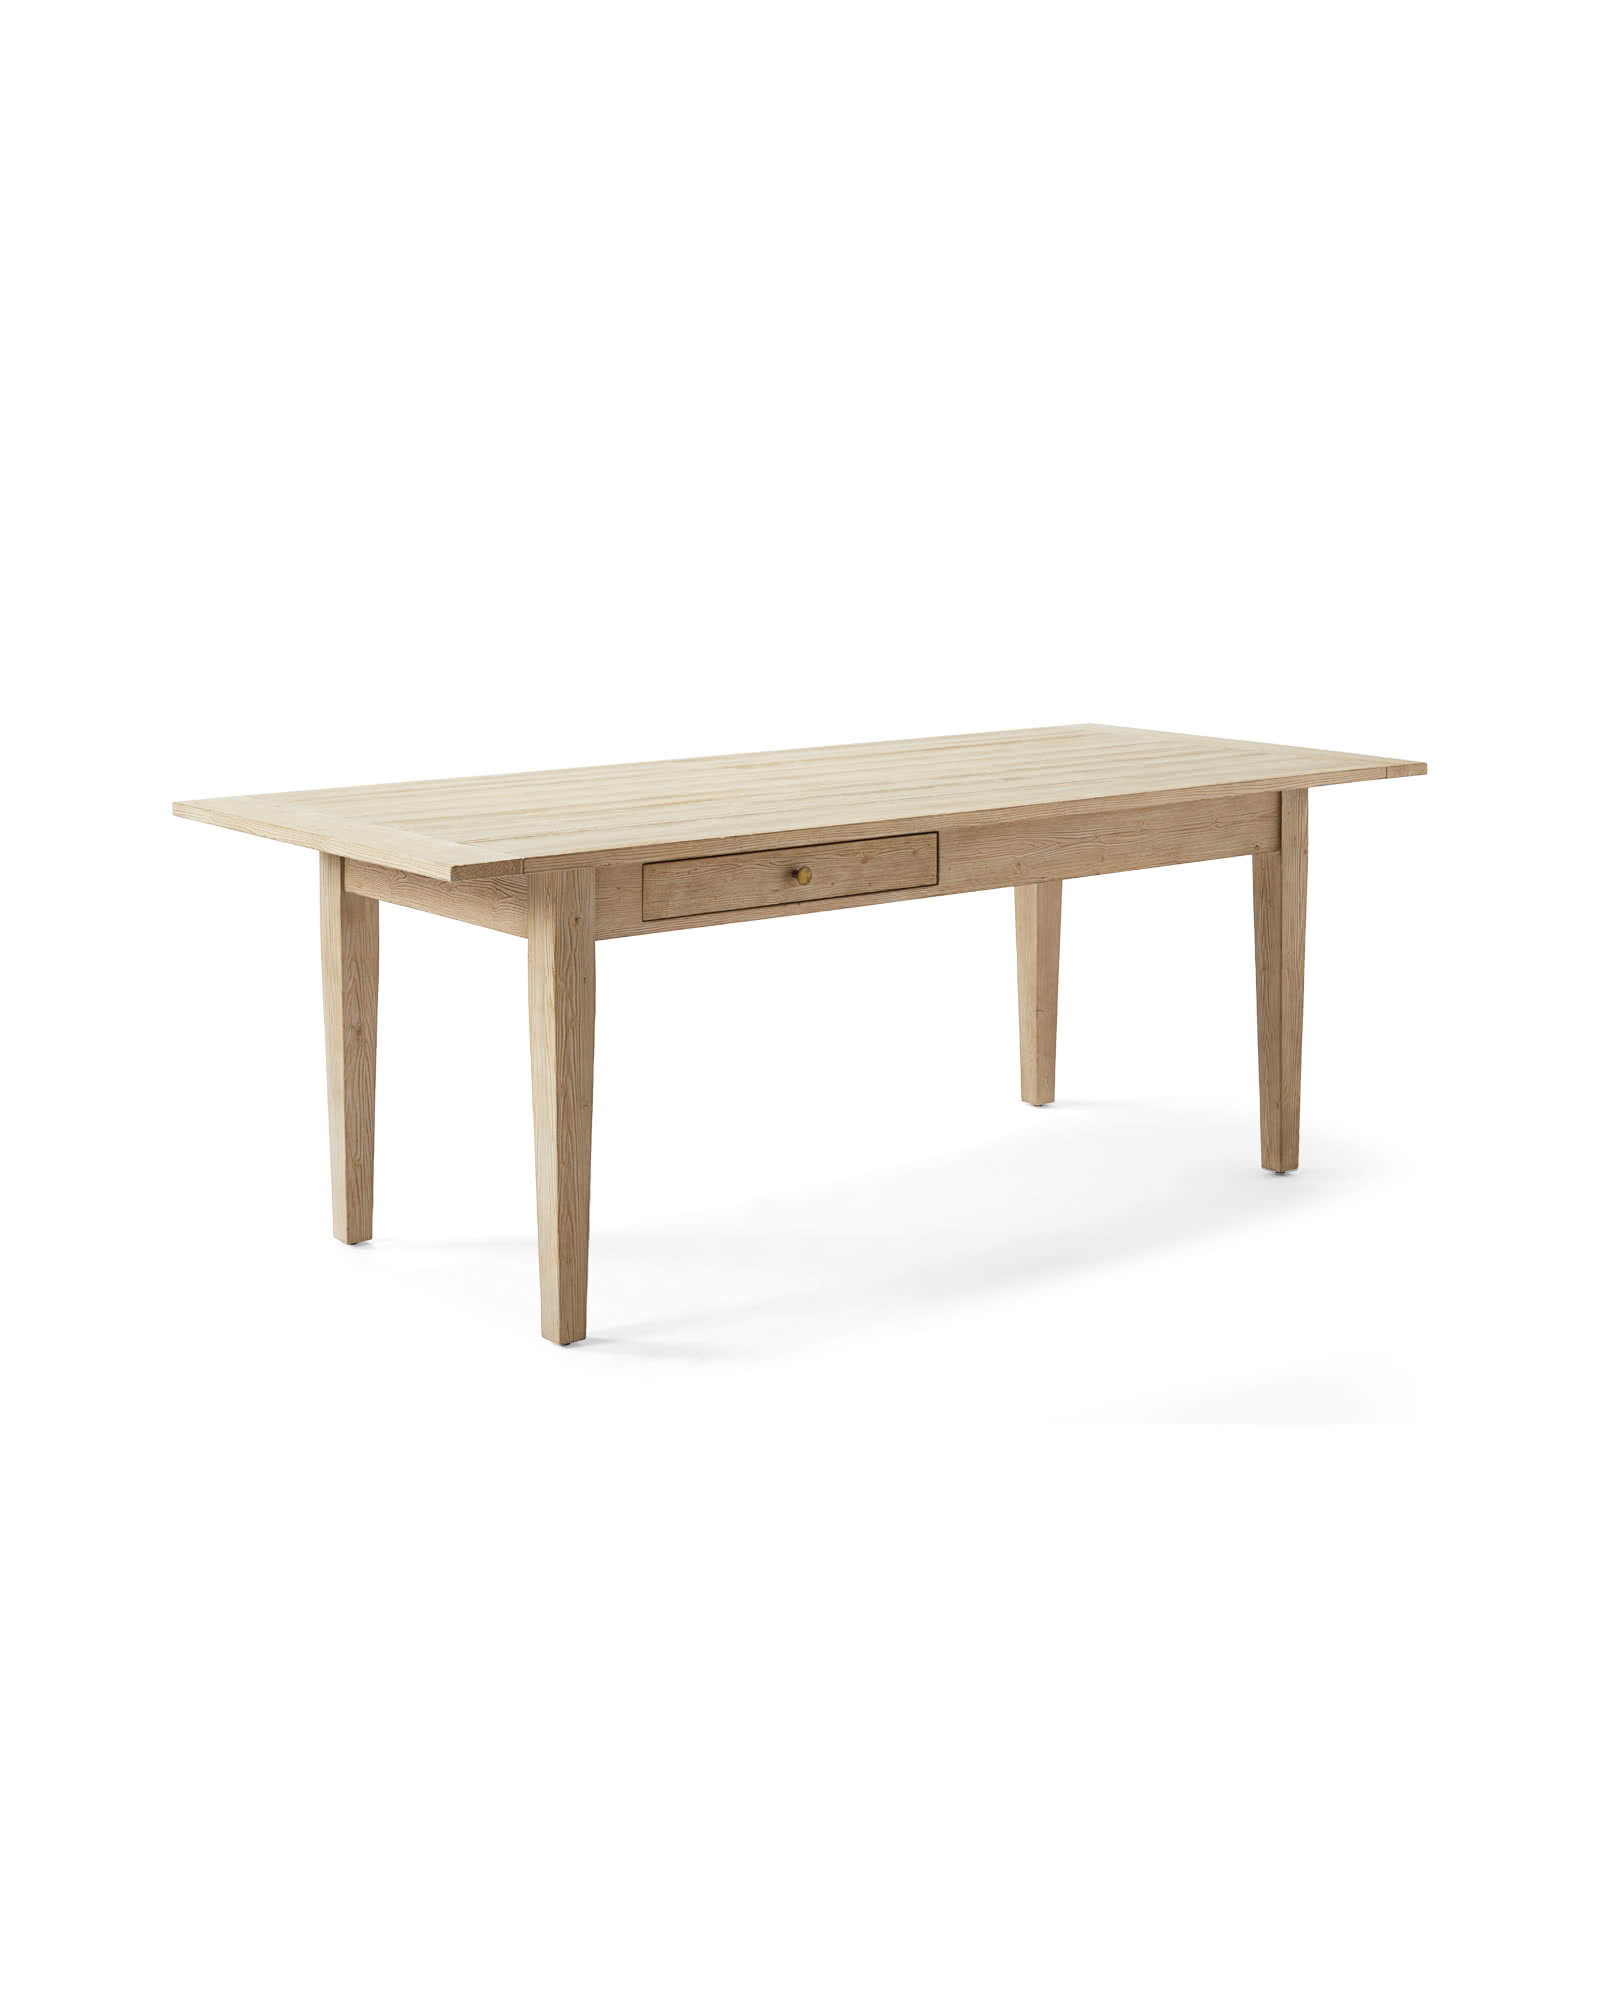 "Beach House 84"" Dining Table - Sunbleached Pine, Sunbleached Pine"